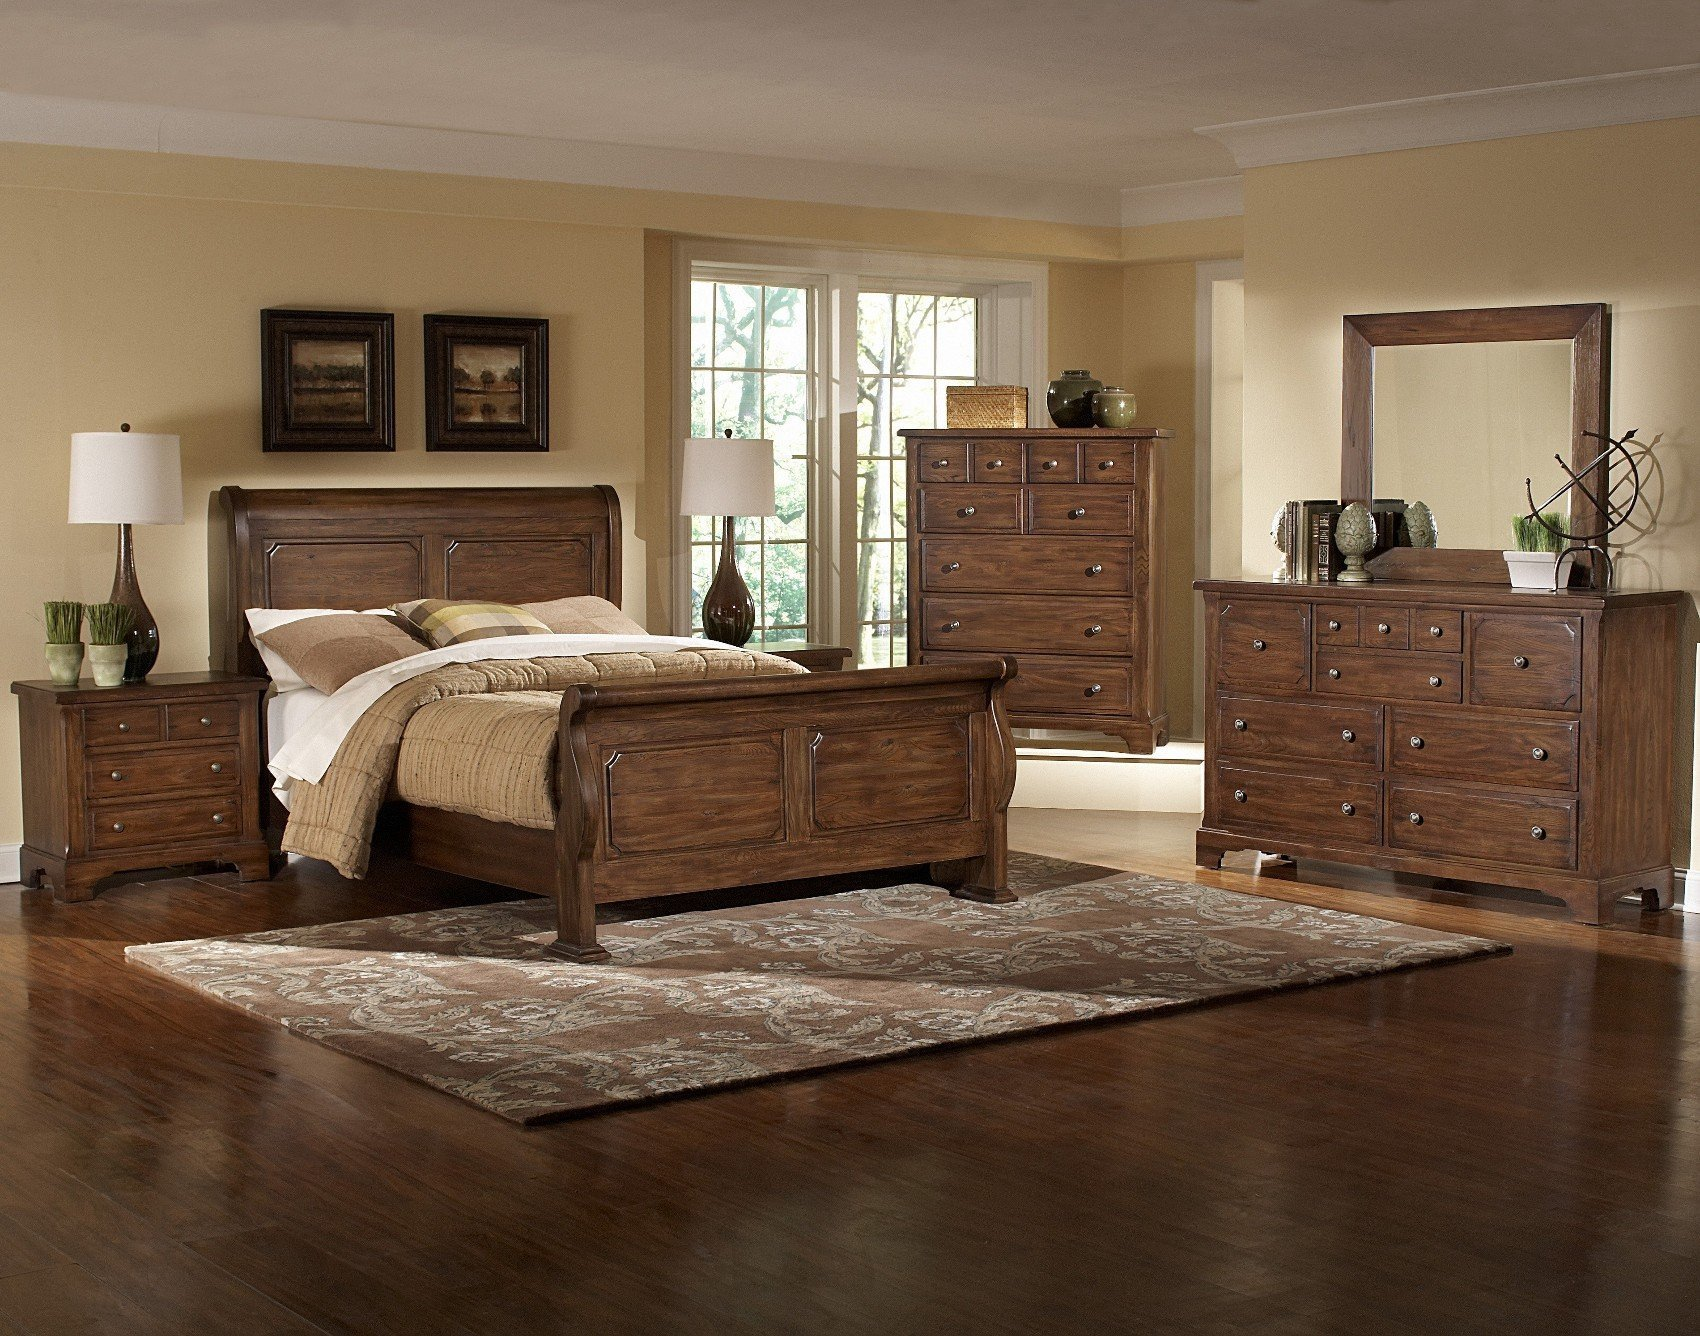 Dark Wood Bedroom Set New Modern Wooden Bedroom Furniture Designs